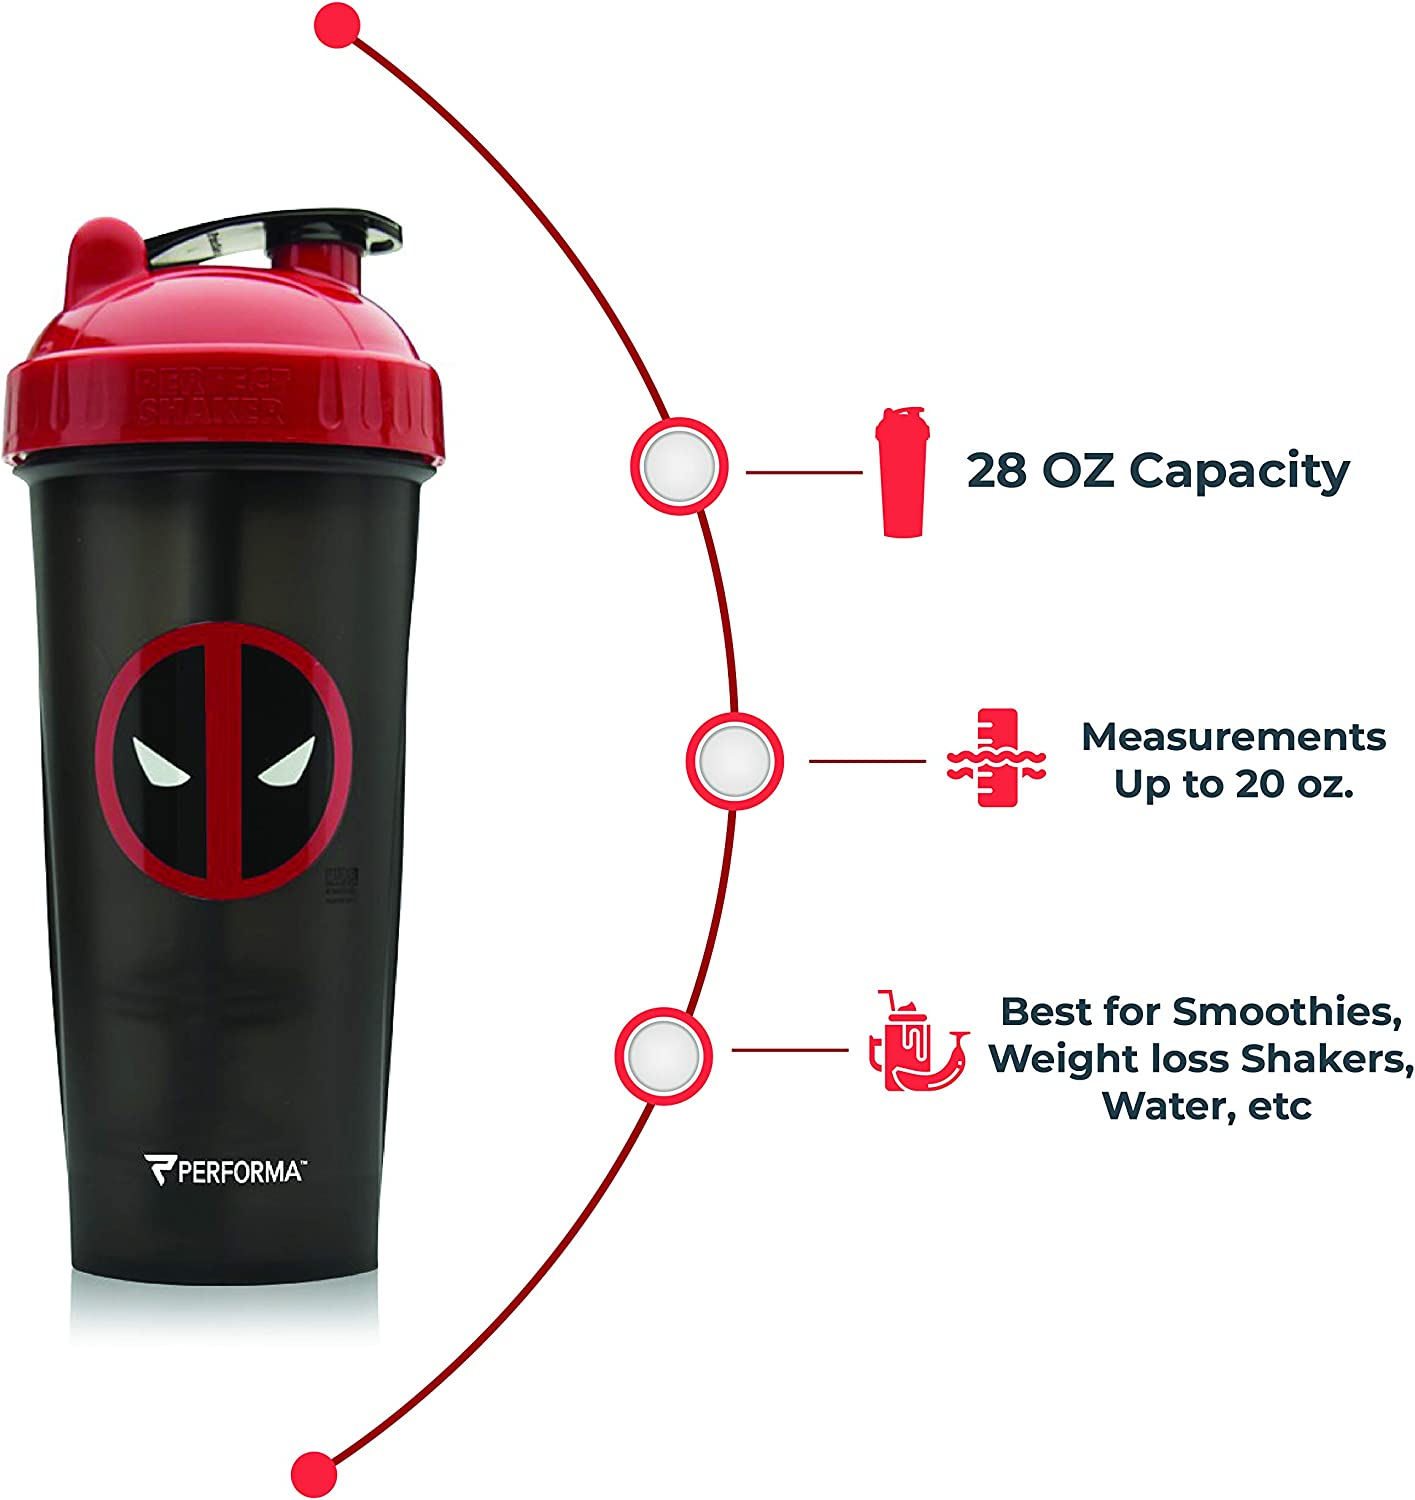 Amazon.com: Performan PerfectShaker Deadpool Shaker Bottle With Actionrod Mixing Technology : Sports & Outdoors